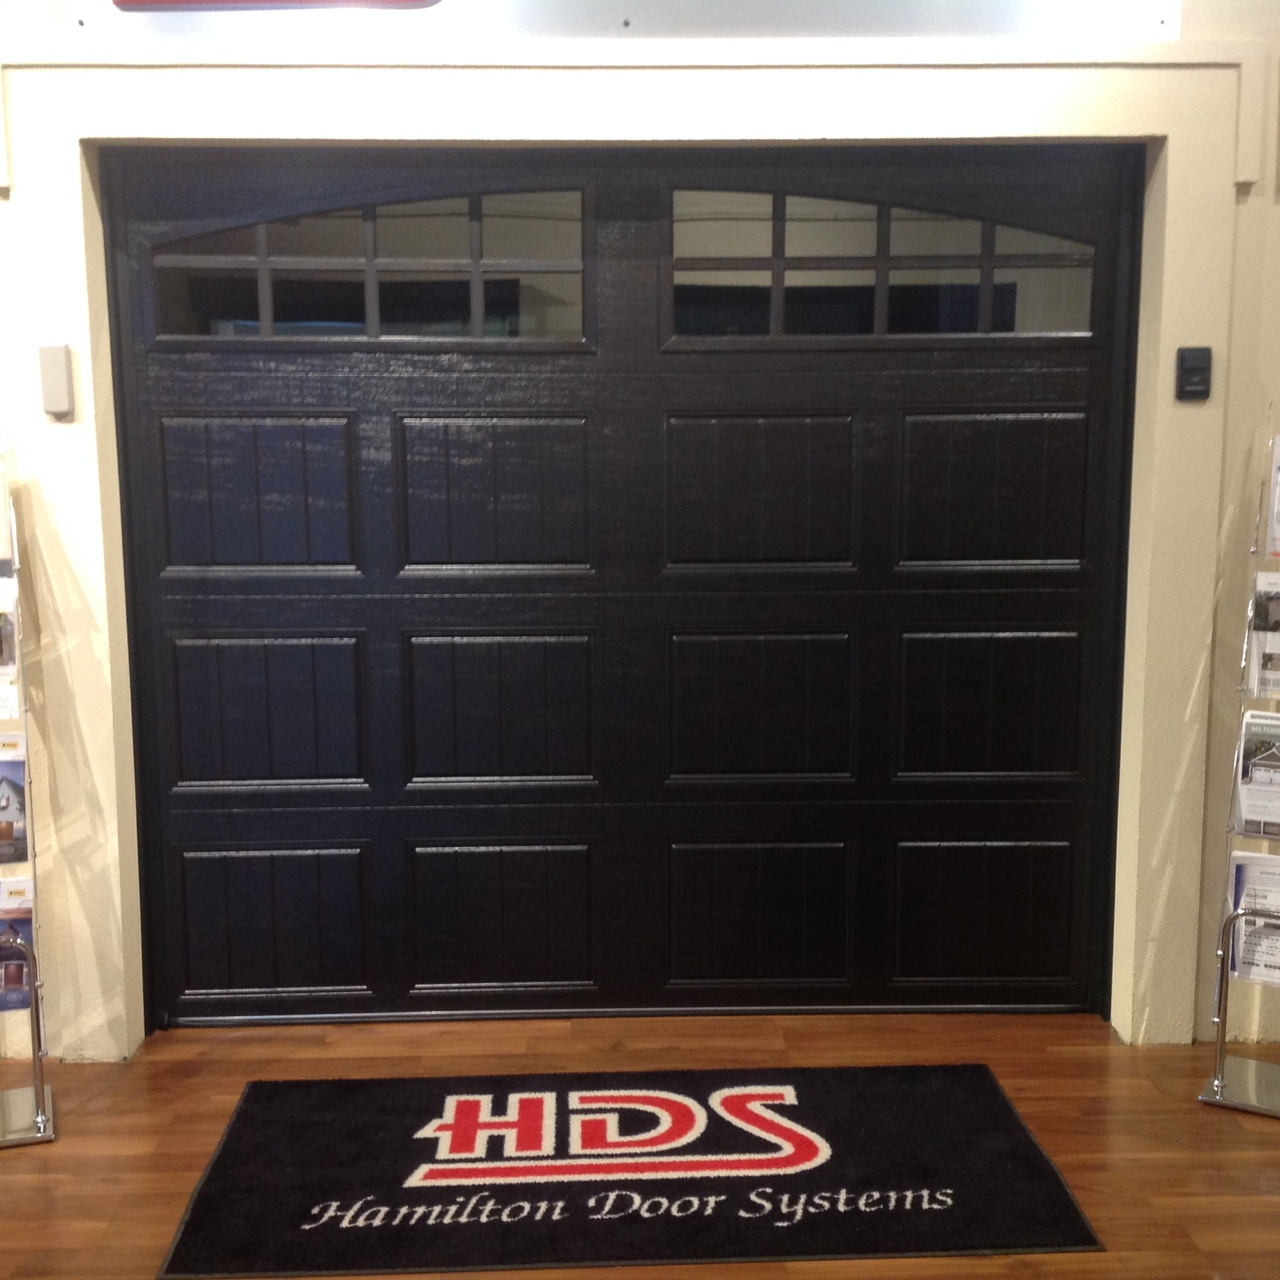 Hamilton door systems garage door repair service gallery small panel design in black solutioingenieria Image collections